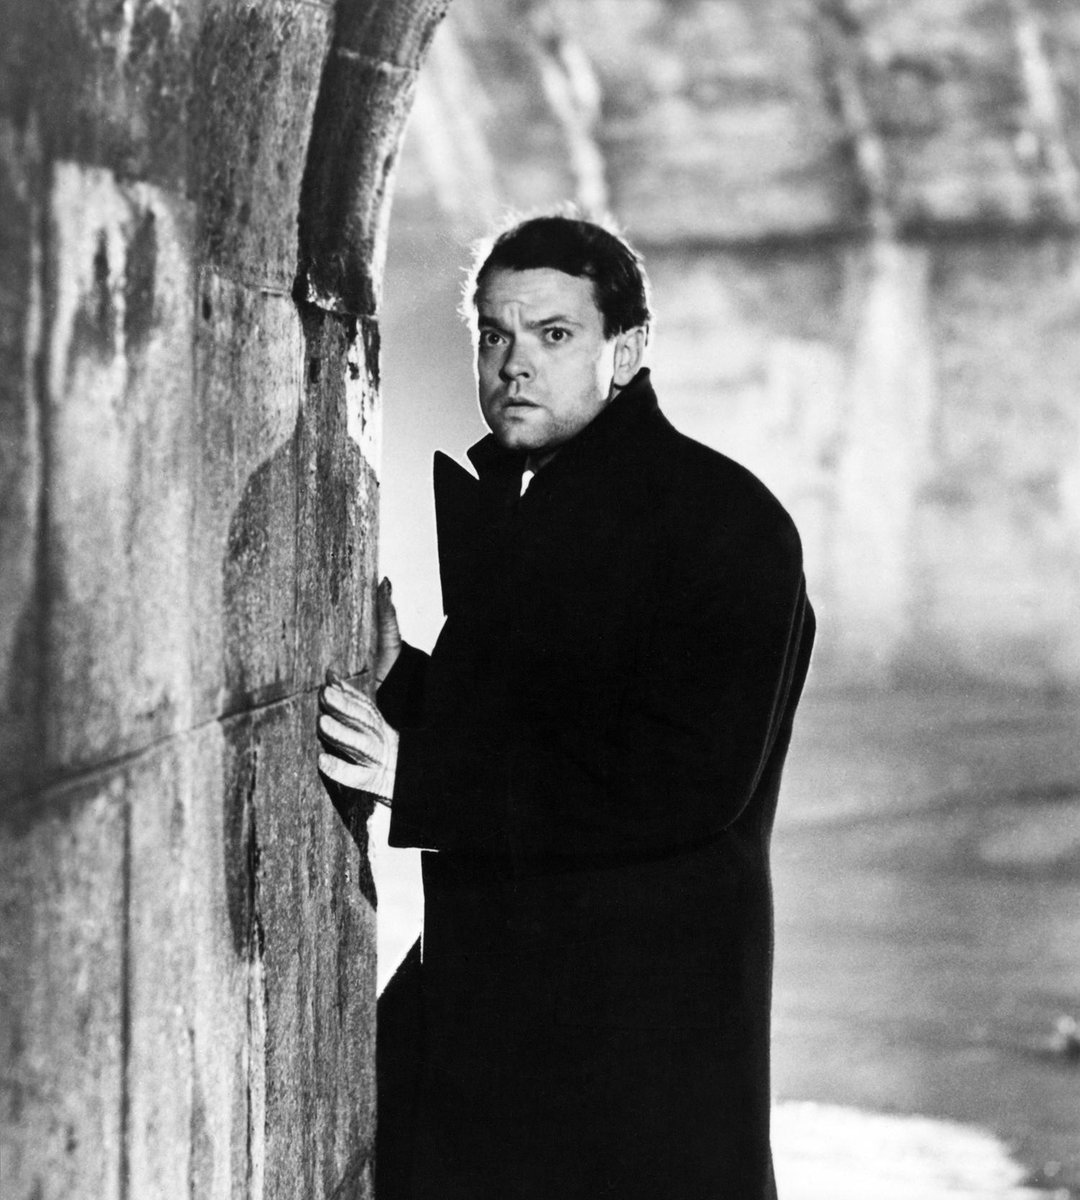 JUST ANNOUNCED! First major restoration of THE THIRD MAN has been HELD OVER through July 23rd! http://t.co/sFrm0PI6Vd http://t.co/rdPSRzyKnx